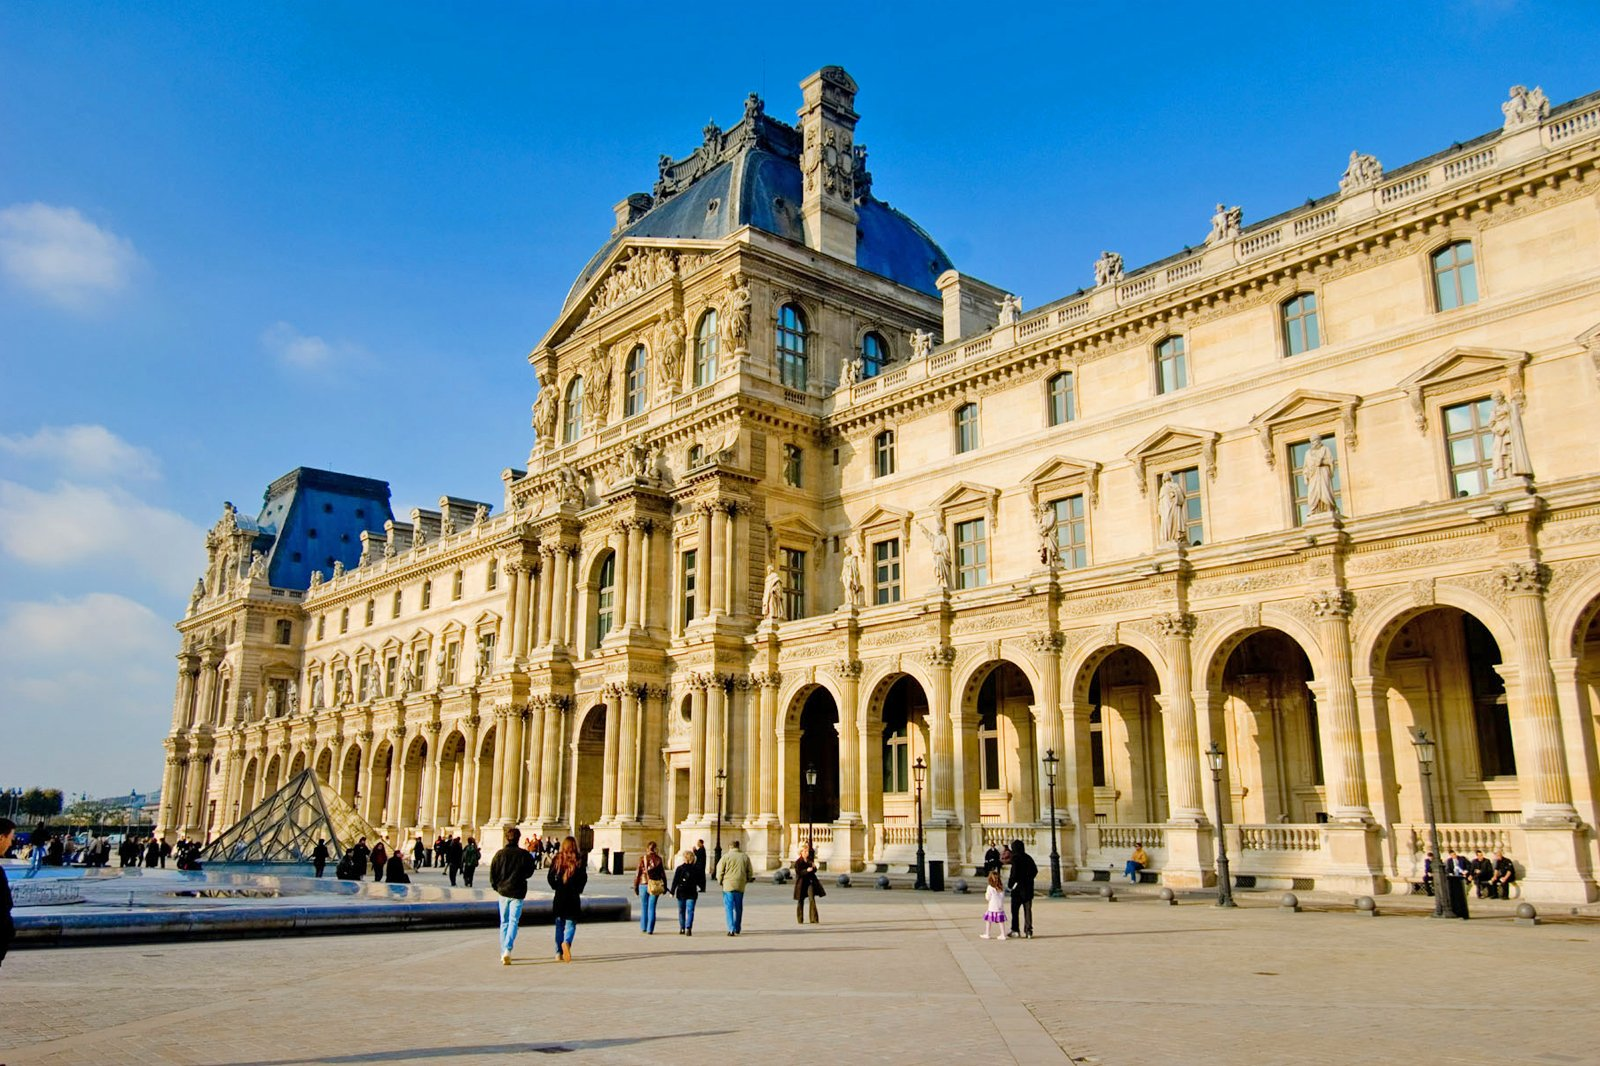 How to Plan a Visit to the Louvre Museum - Tips for Your